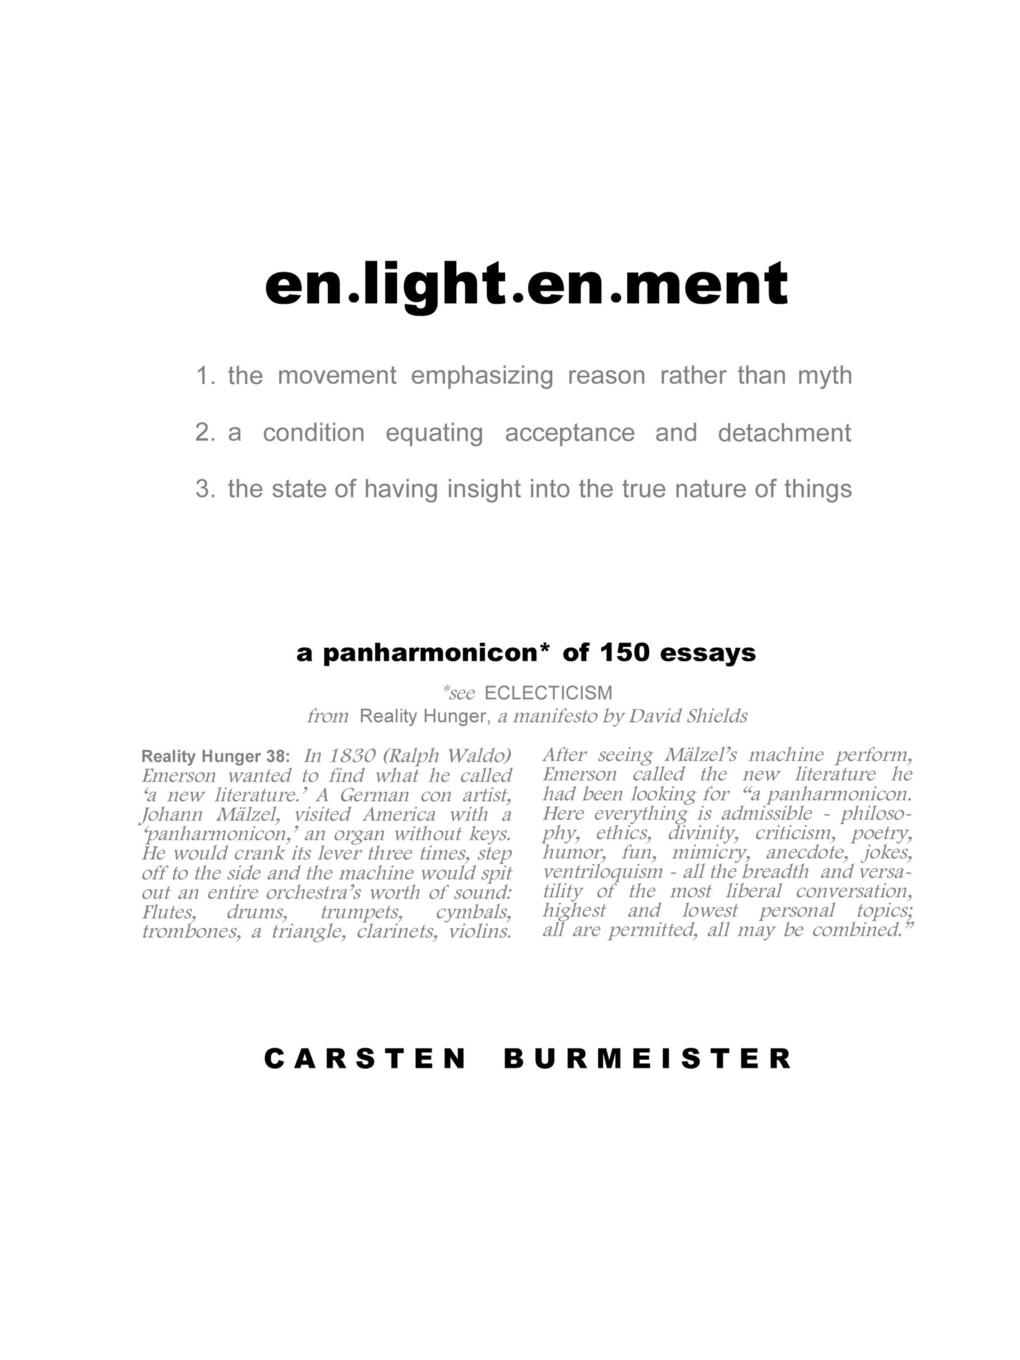 Carsten Burmeister en.light.en.ment bradlaugh charles a few words about the devil and other biographical sketches and essays